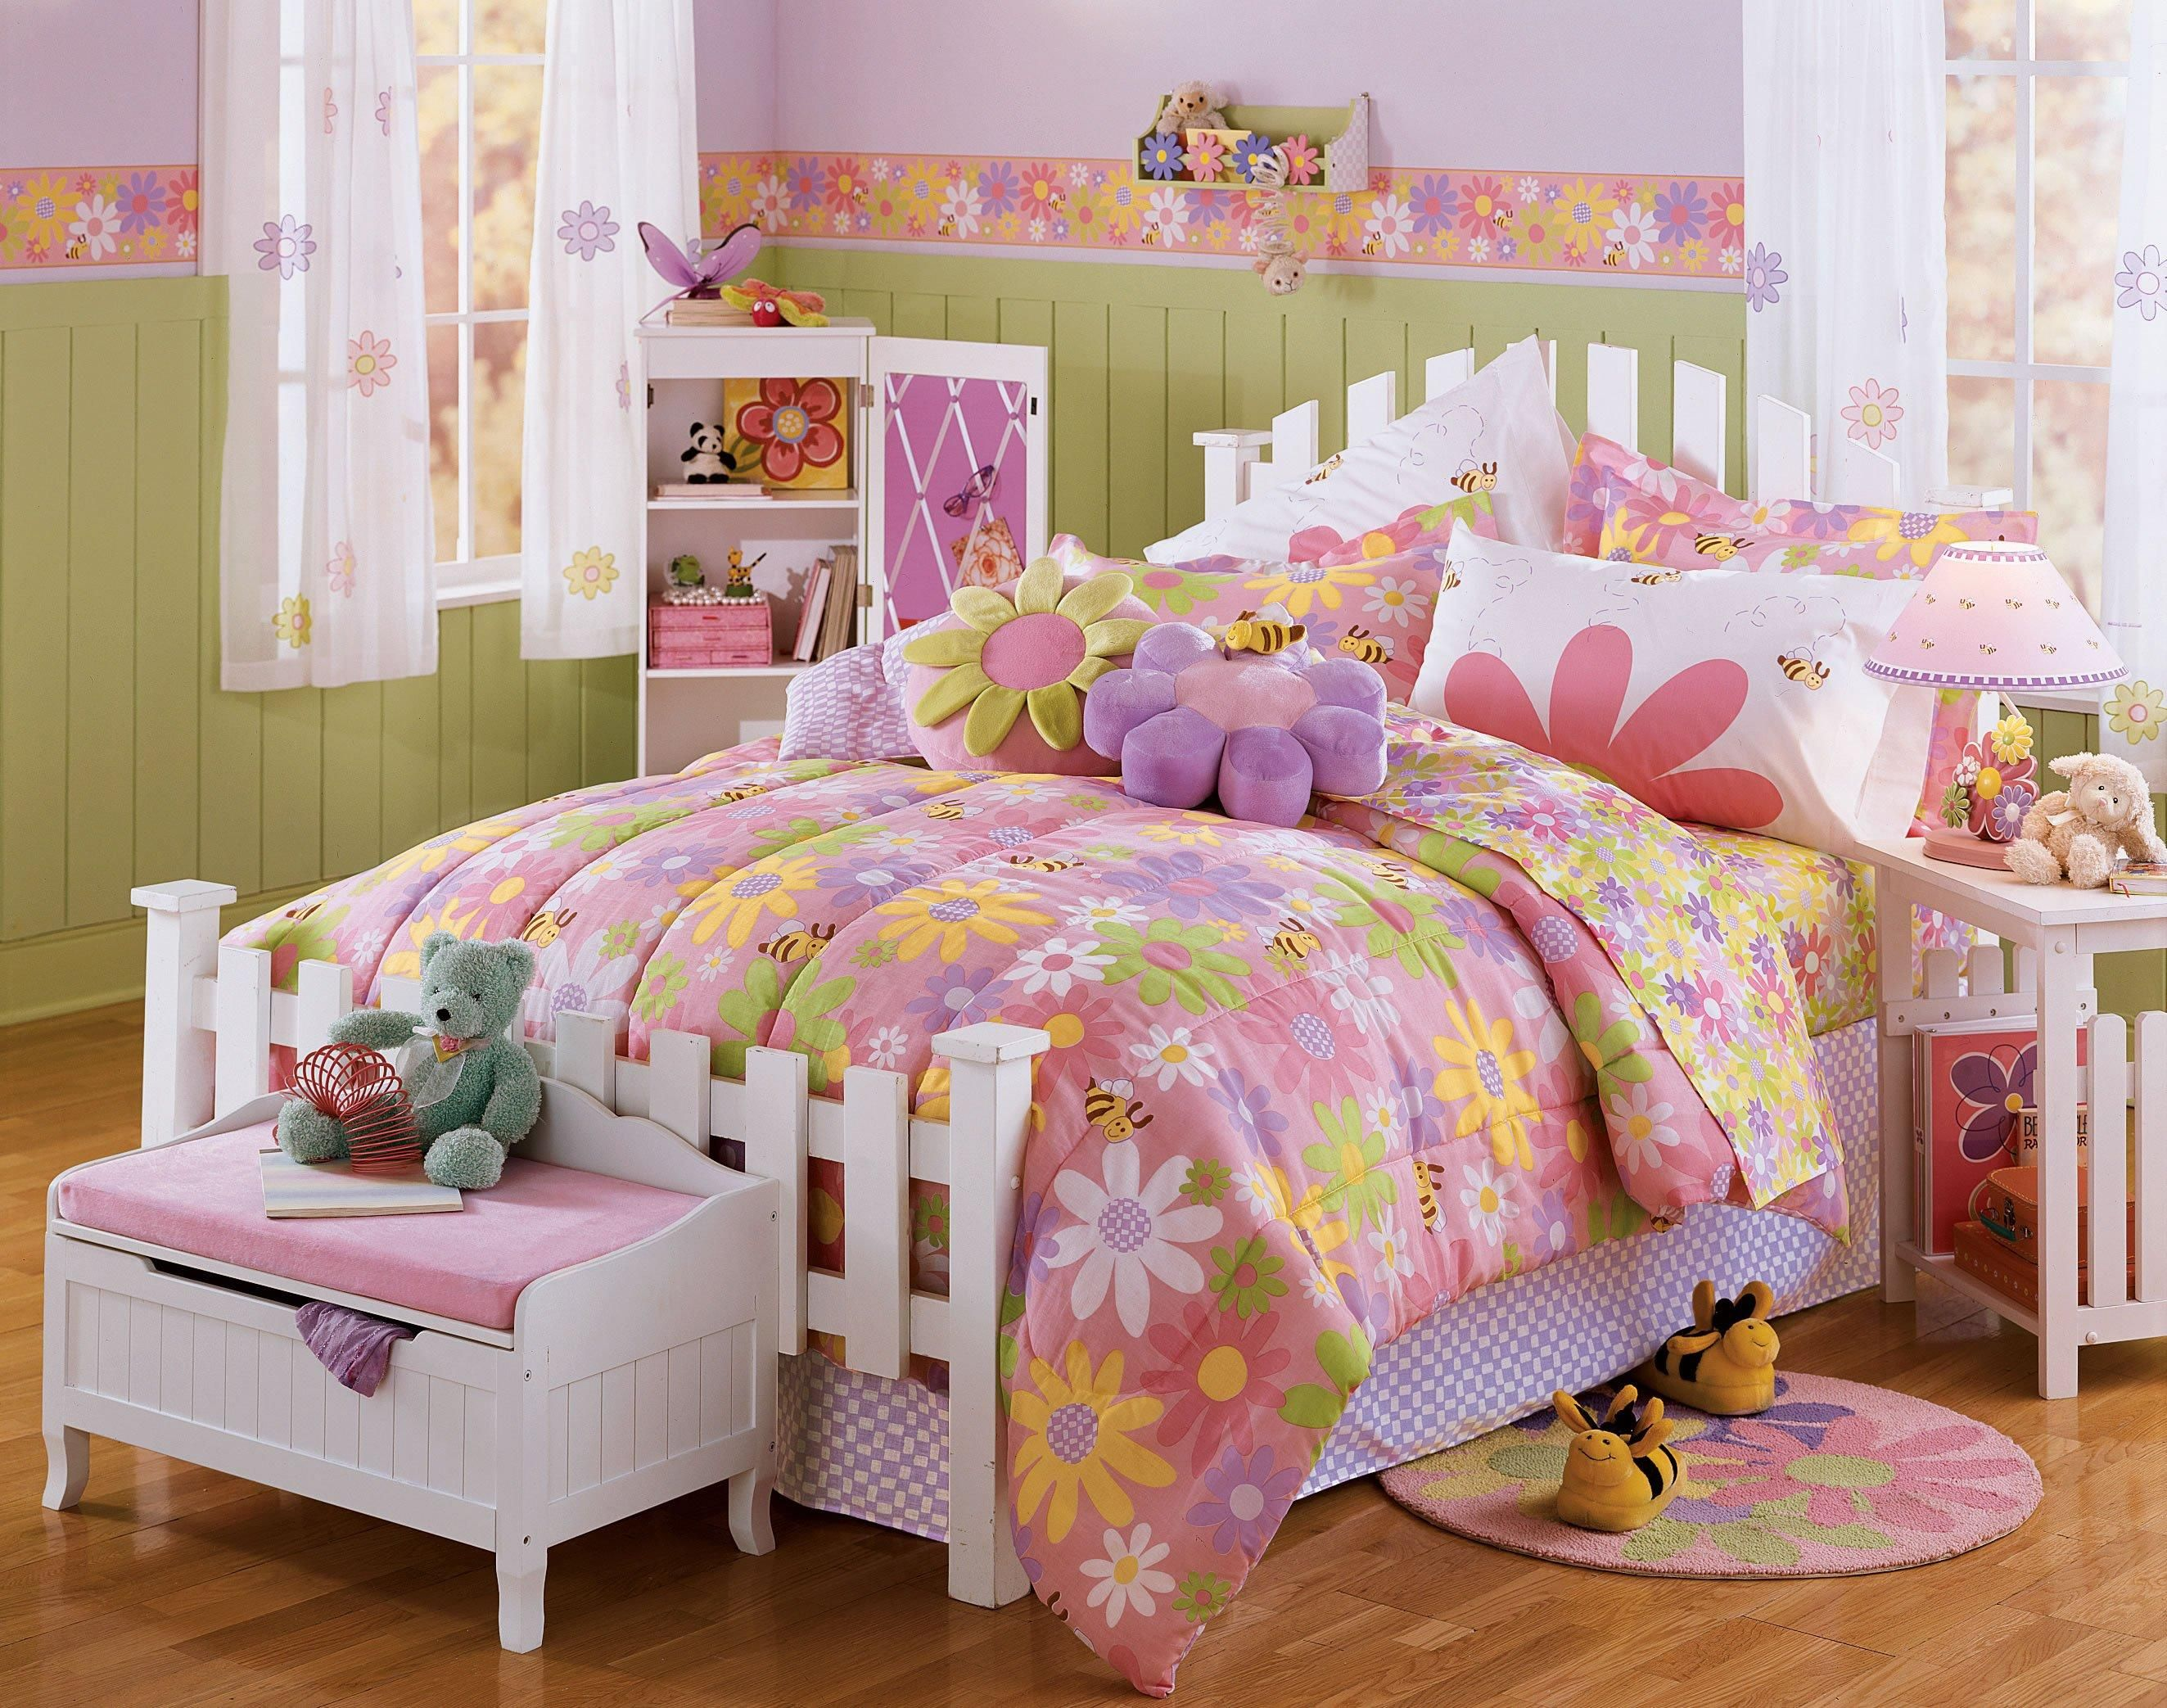 Pastel Green and Pink Bedroom httprilanecomdecoratingideas